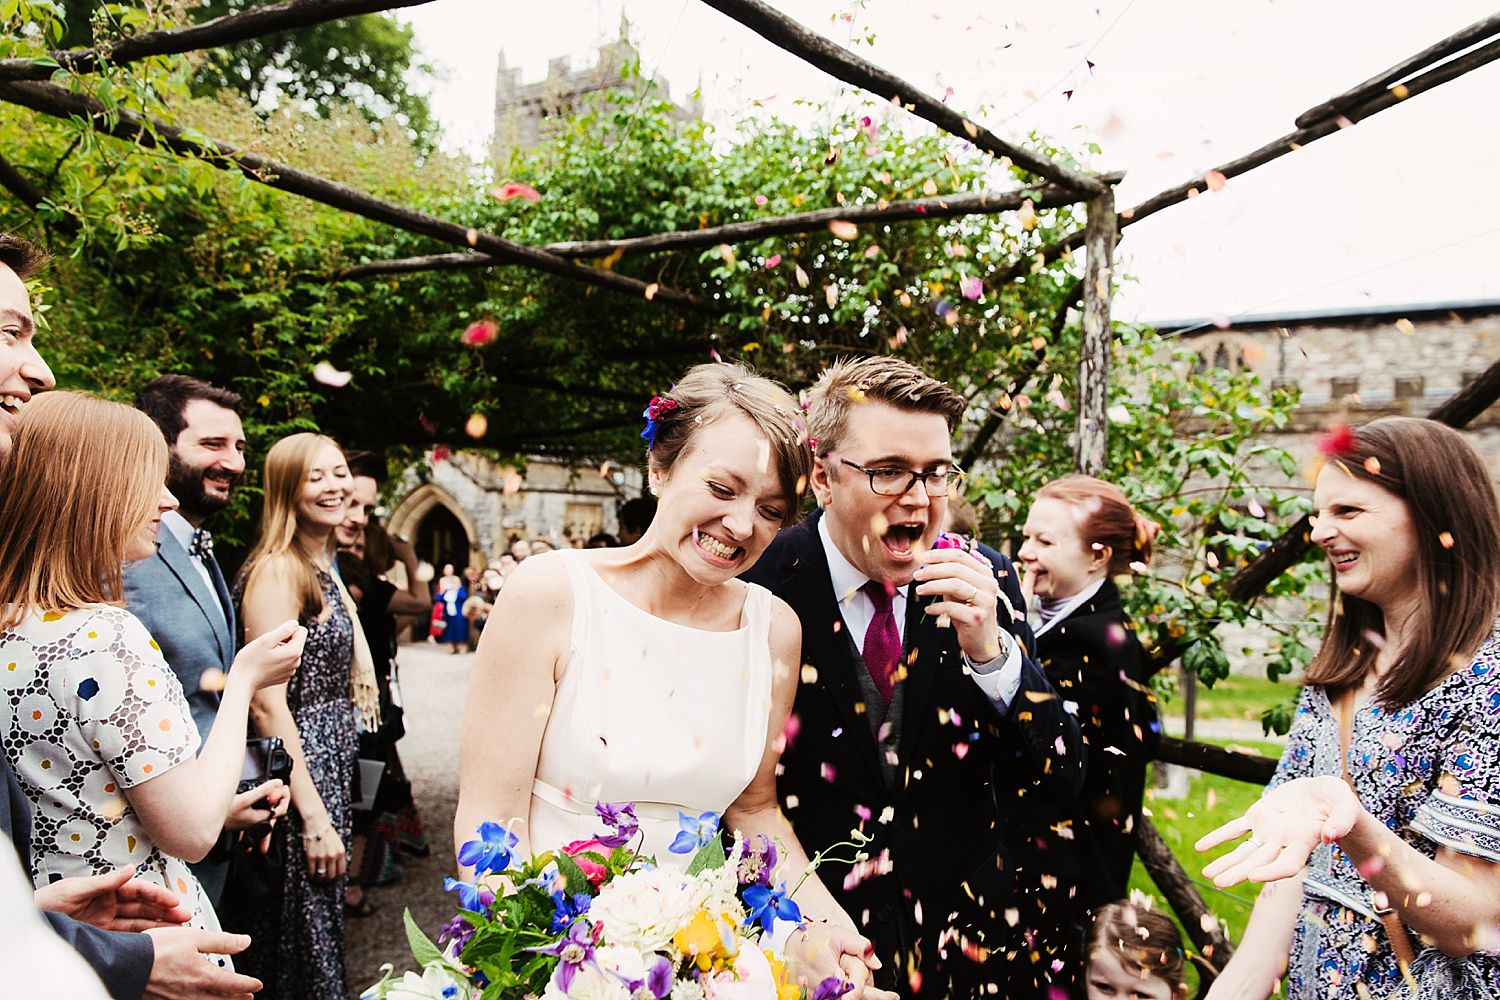 Close up of bride andgroom in confetti shower at Park House Barn wedding